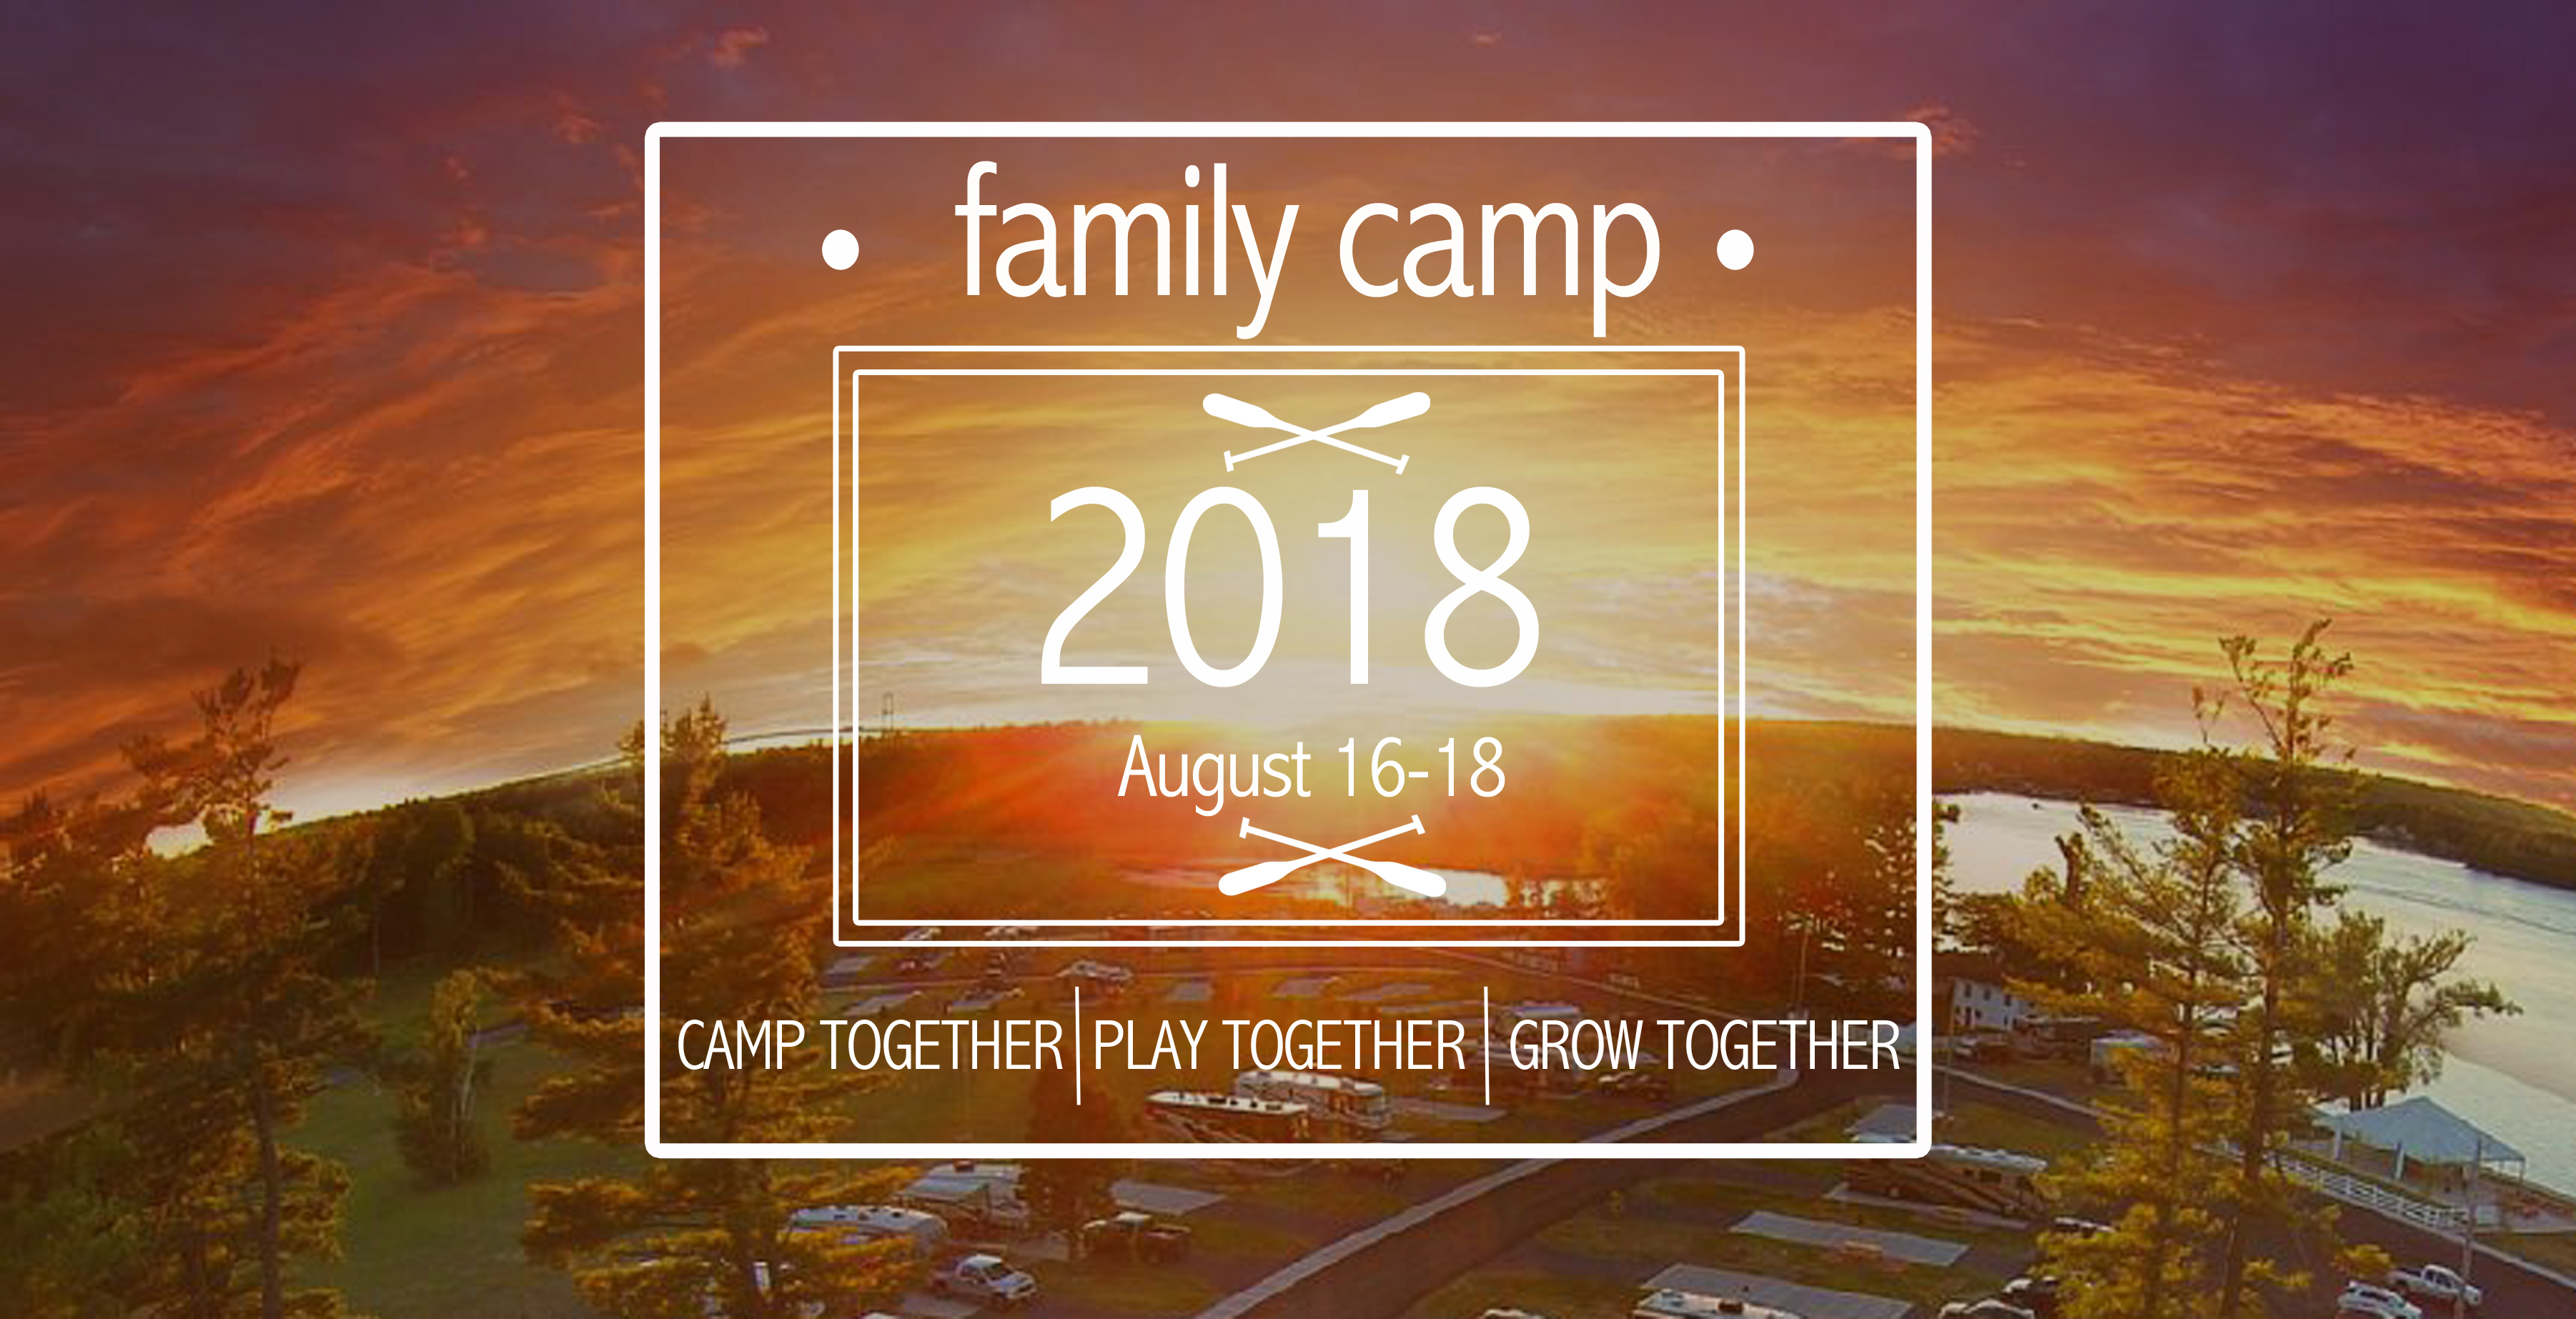 Family Camp 2018 image